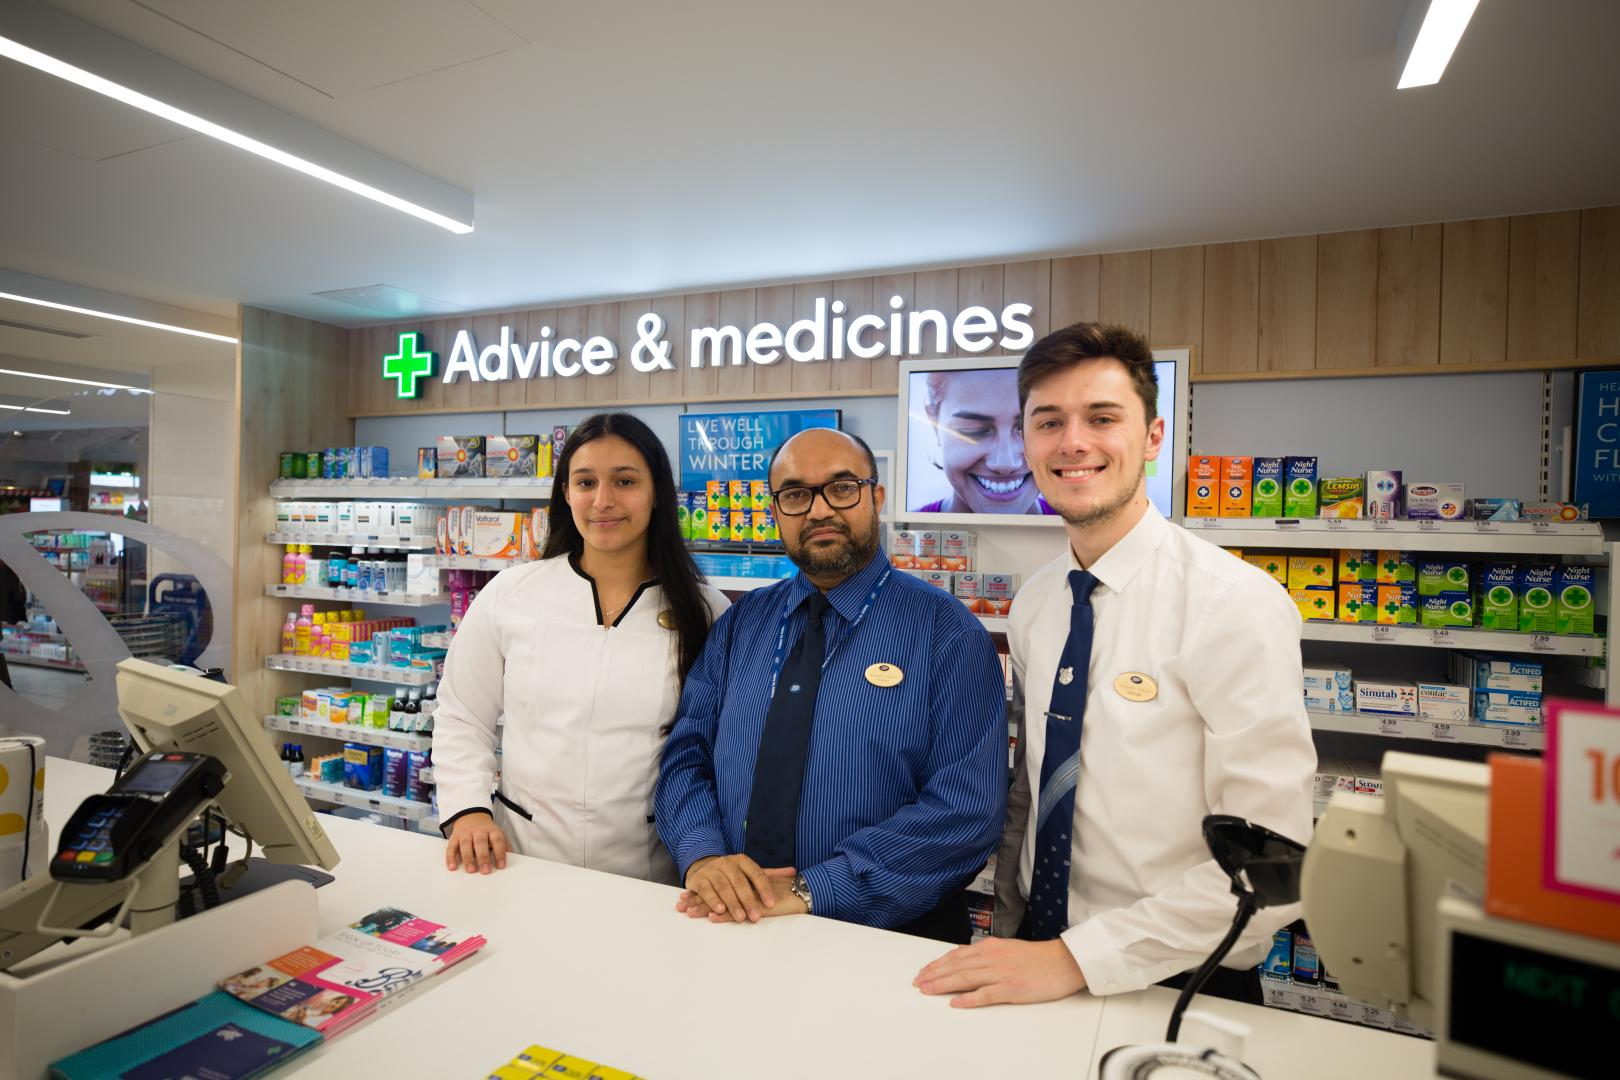 Boots opticians and pharmacists at checkout counter